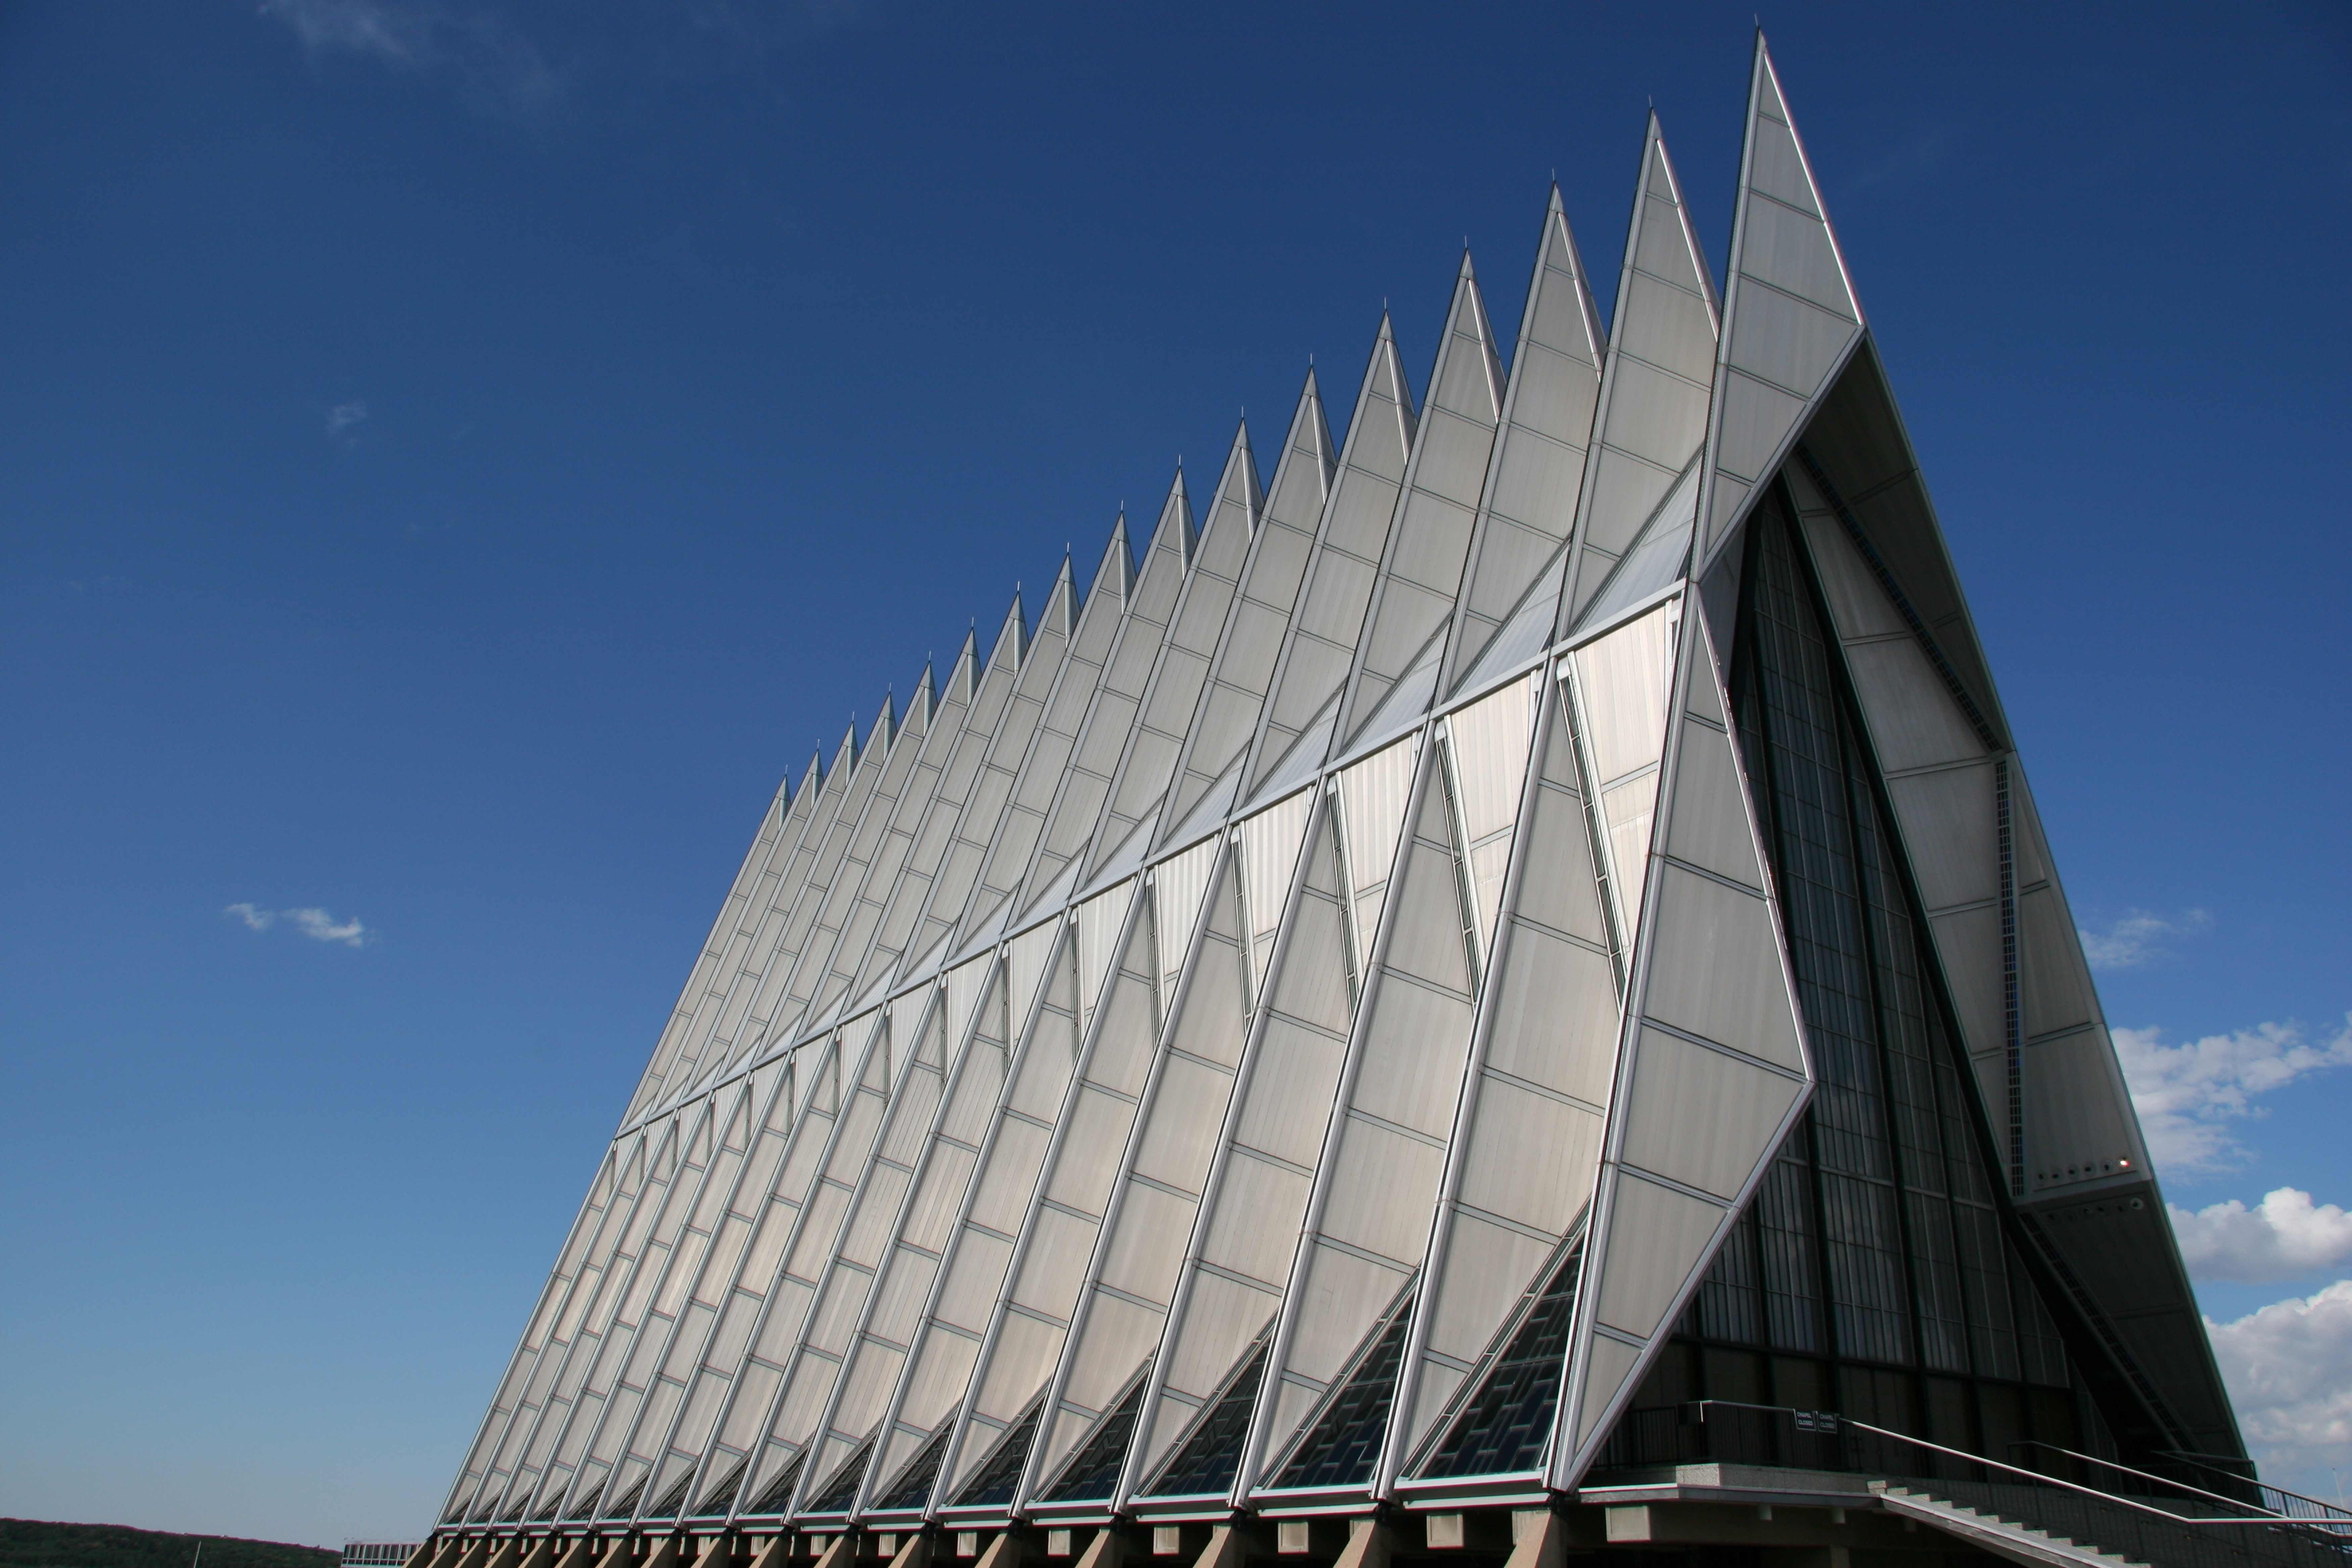 Air Force Academy Chapel (Colorado, USA) Architecture